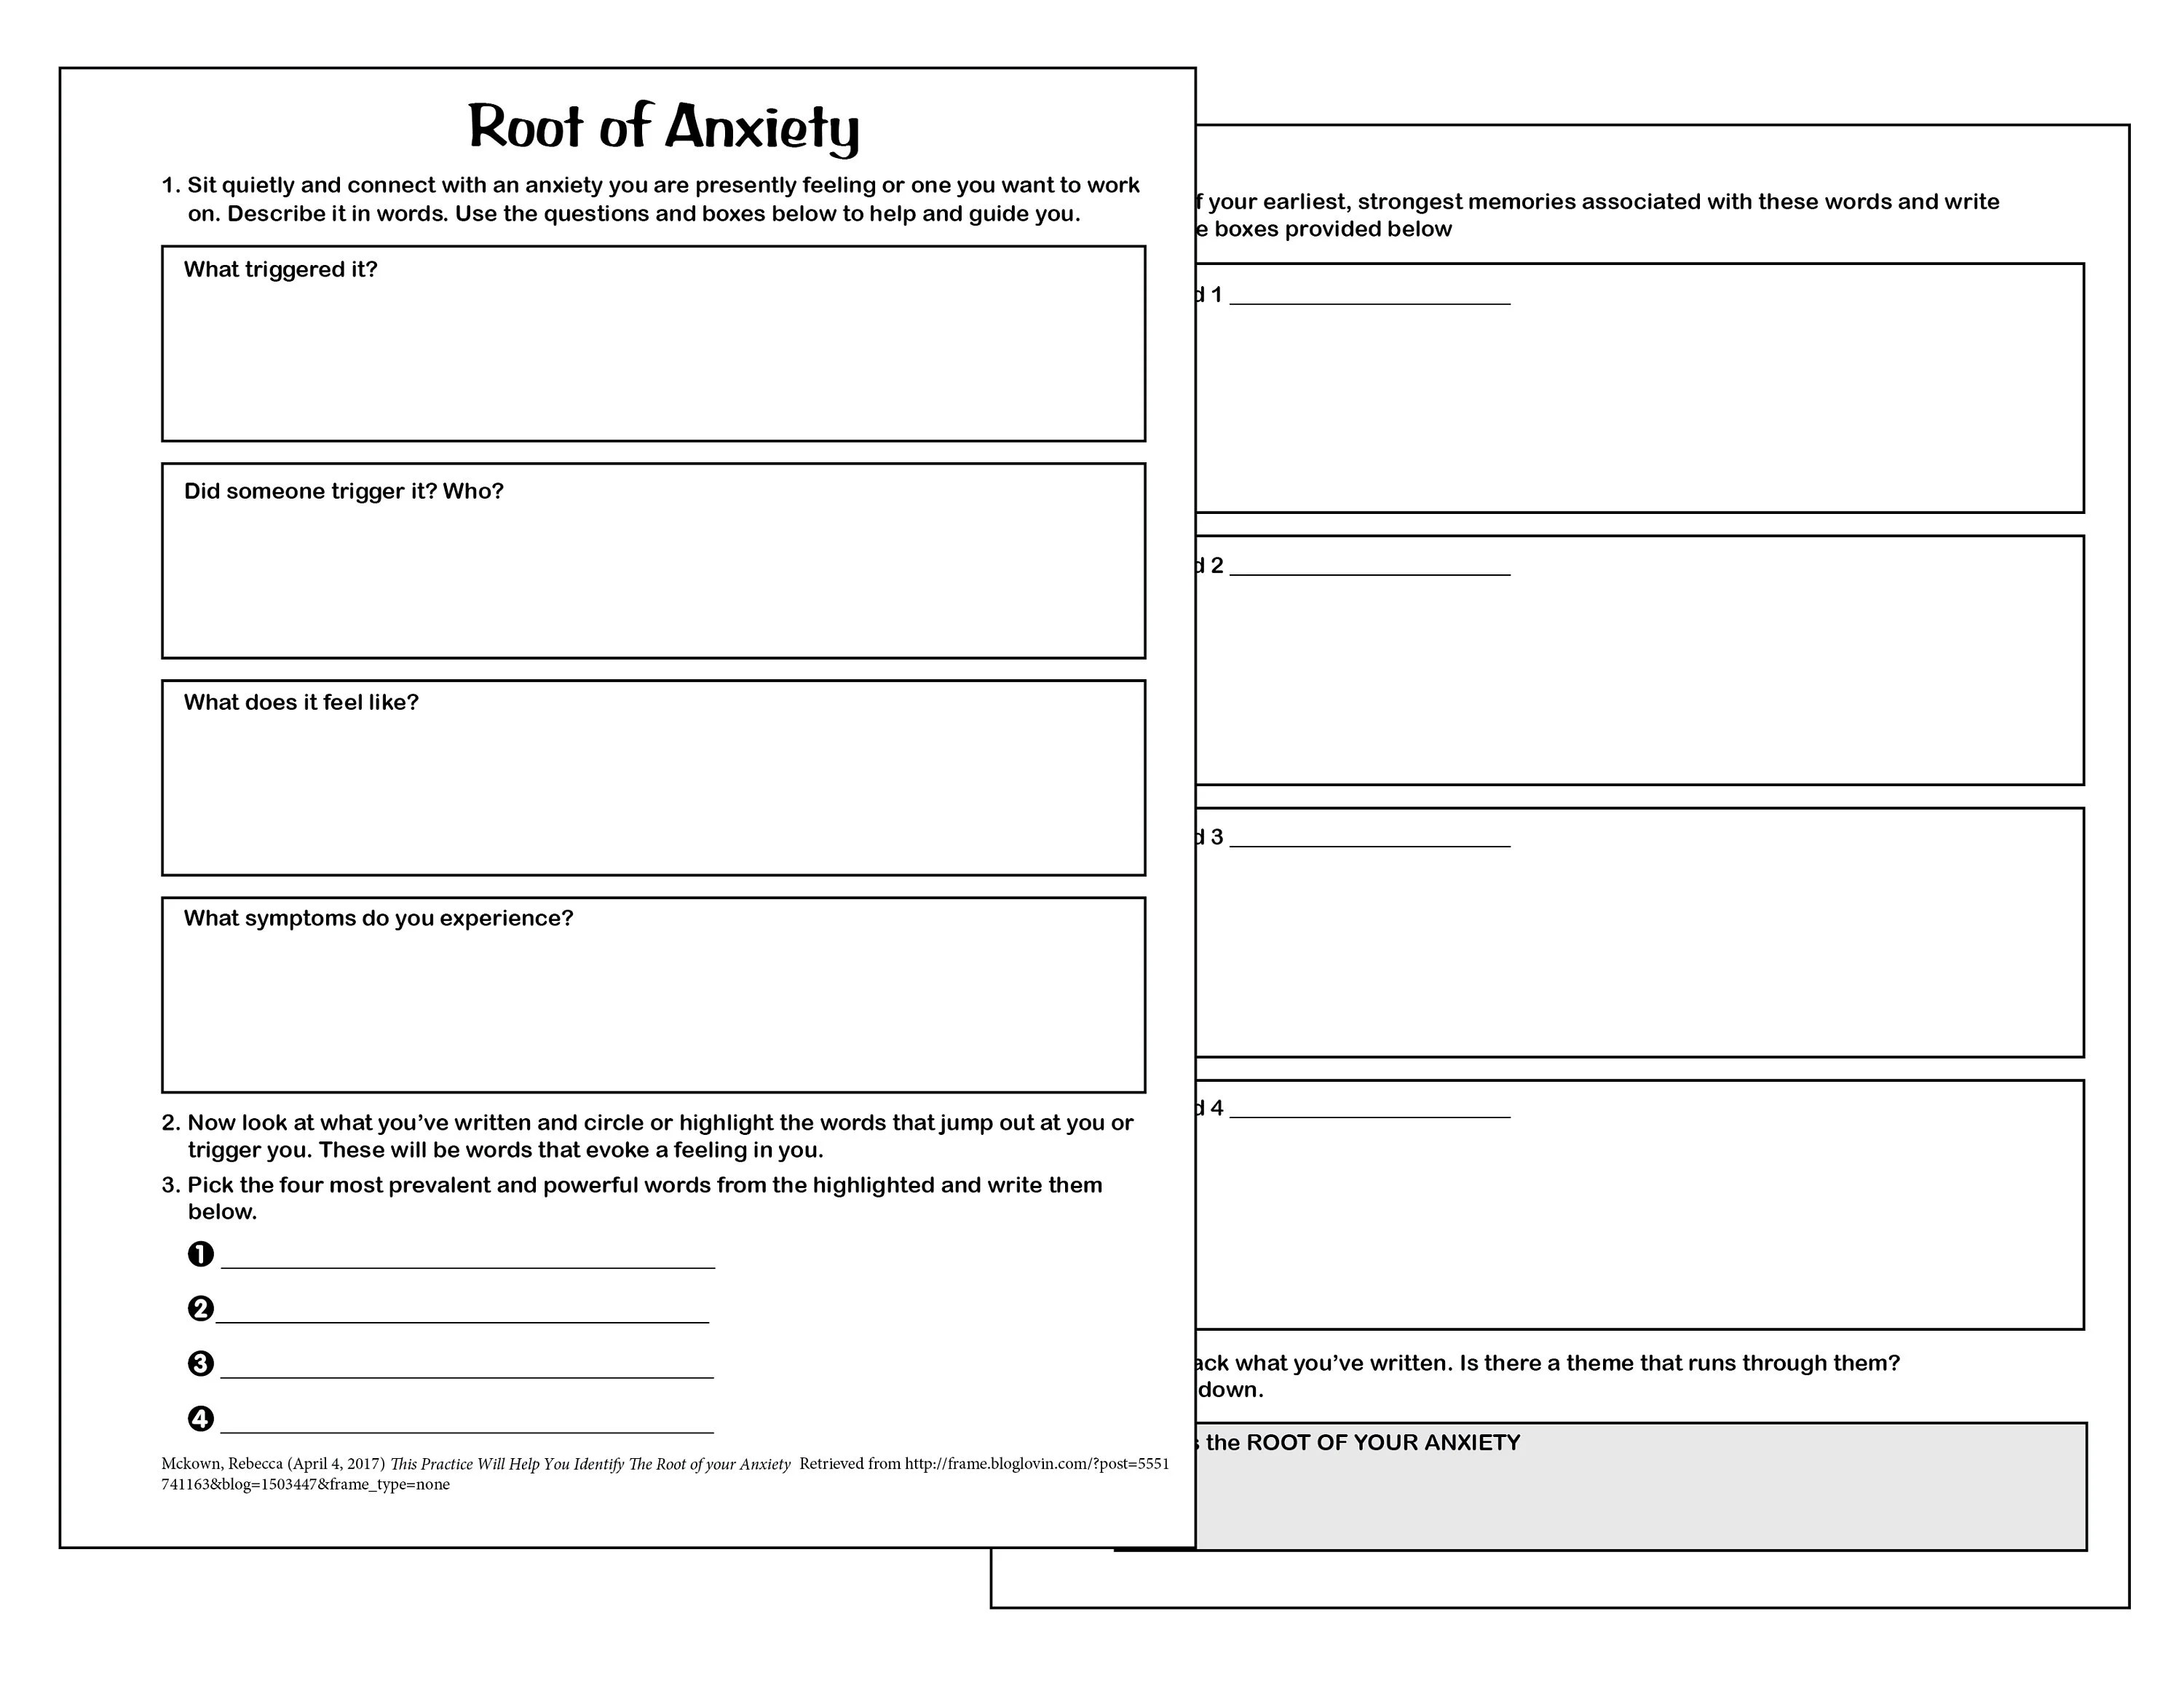 Finding The Root Of Anxiety Printable Worksheet